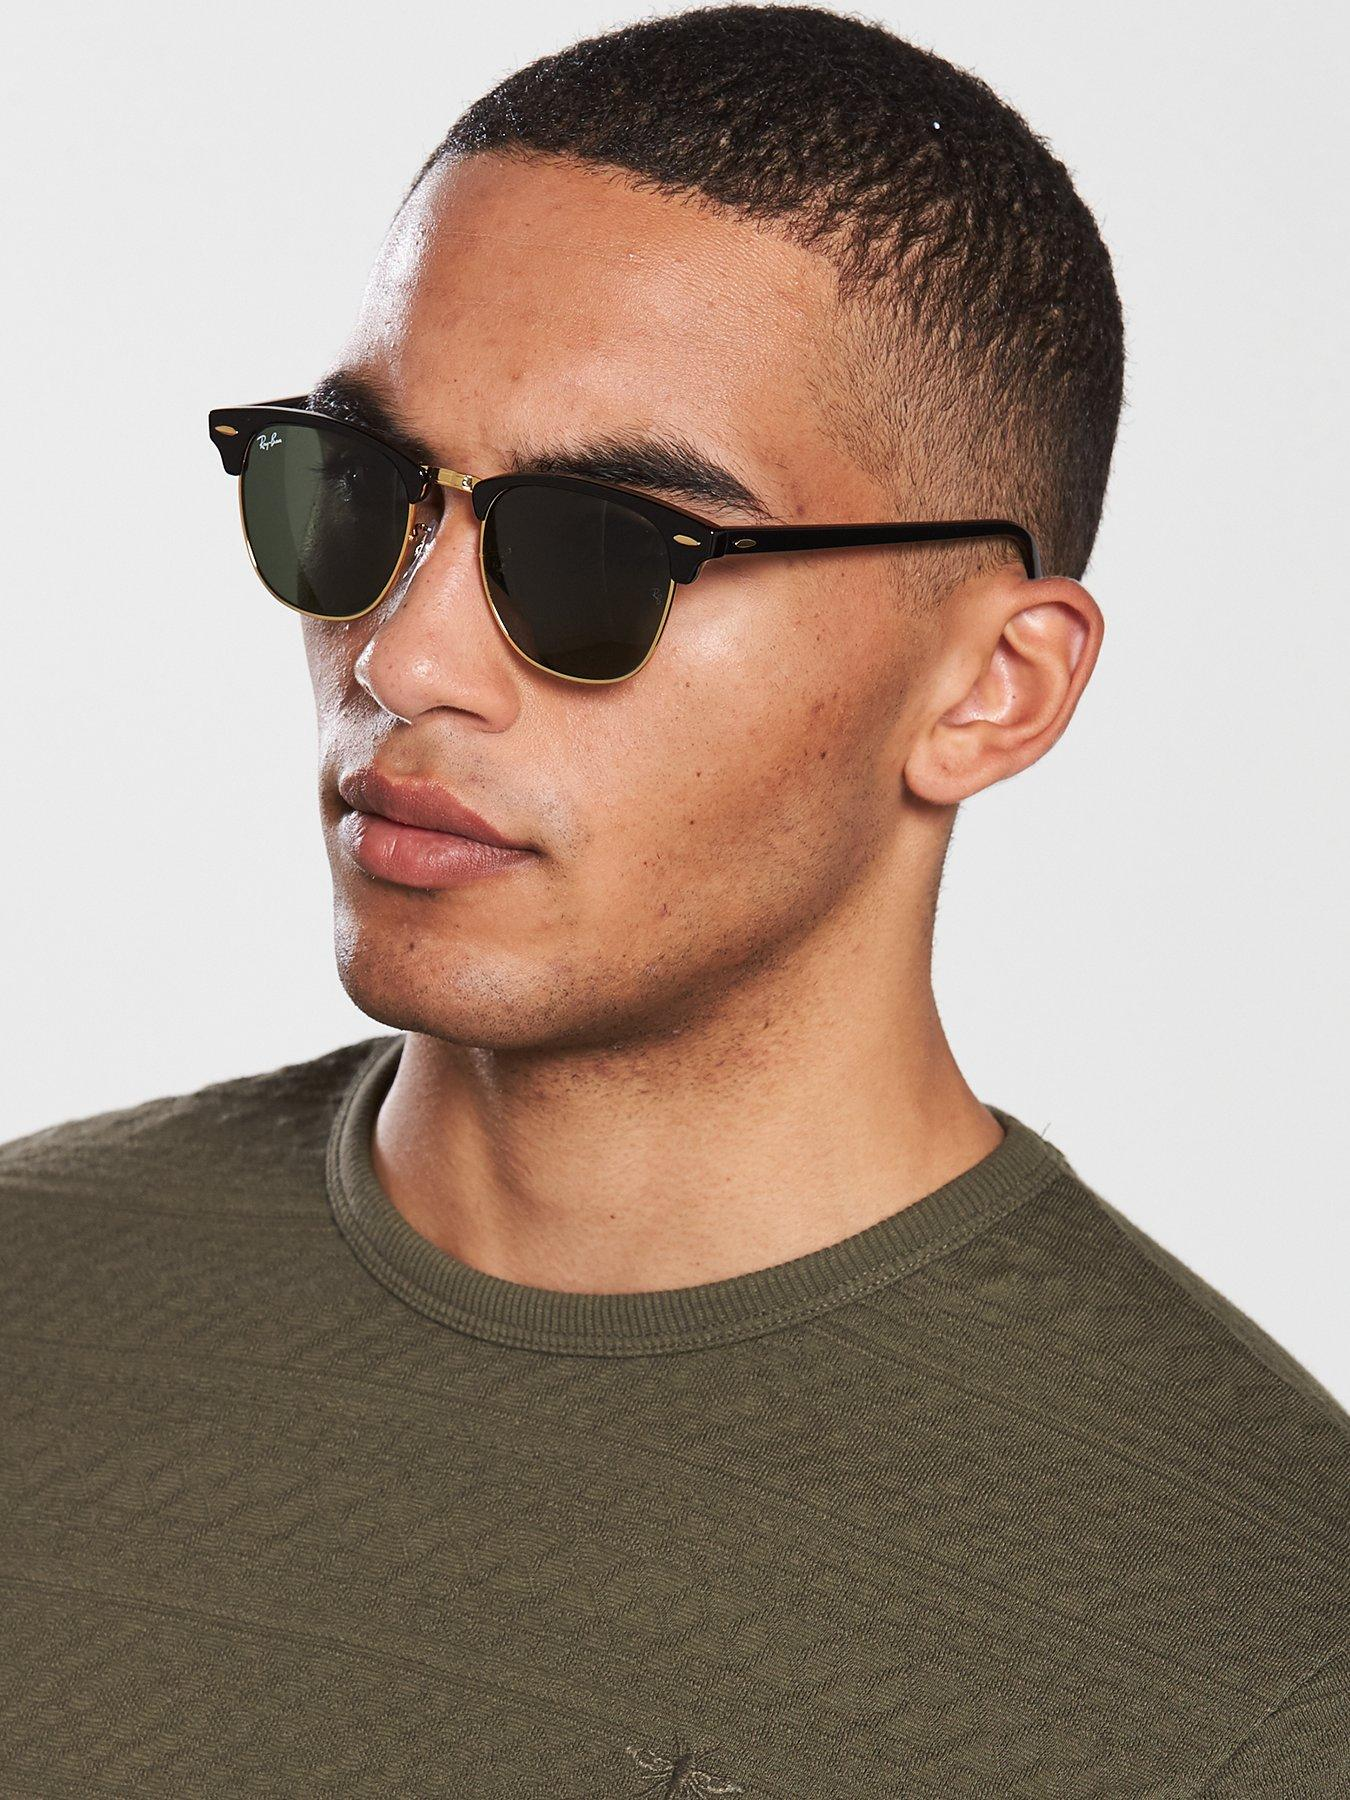 cheap ray ban clubmaster sunglasses uk  ray ban rayban clubmaster sunglasses